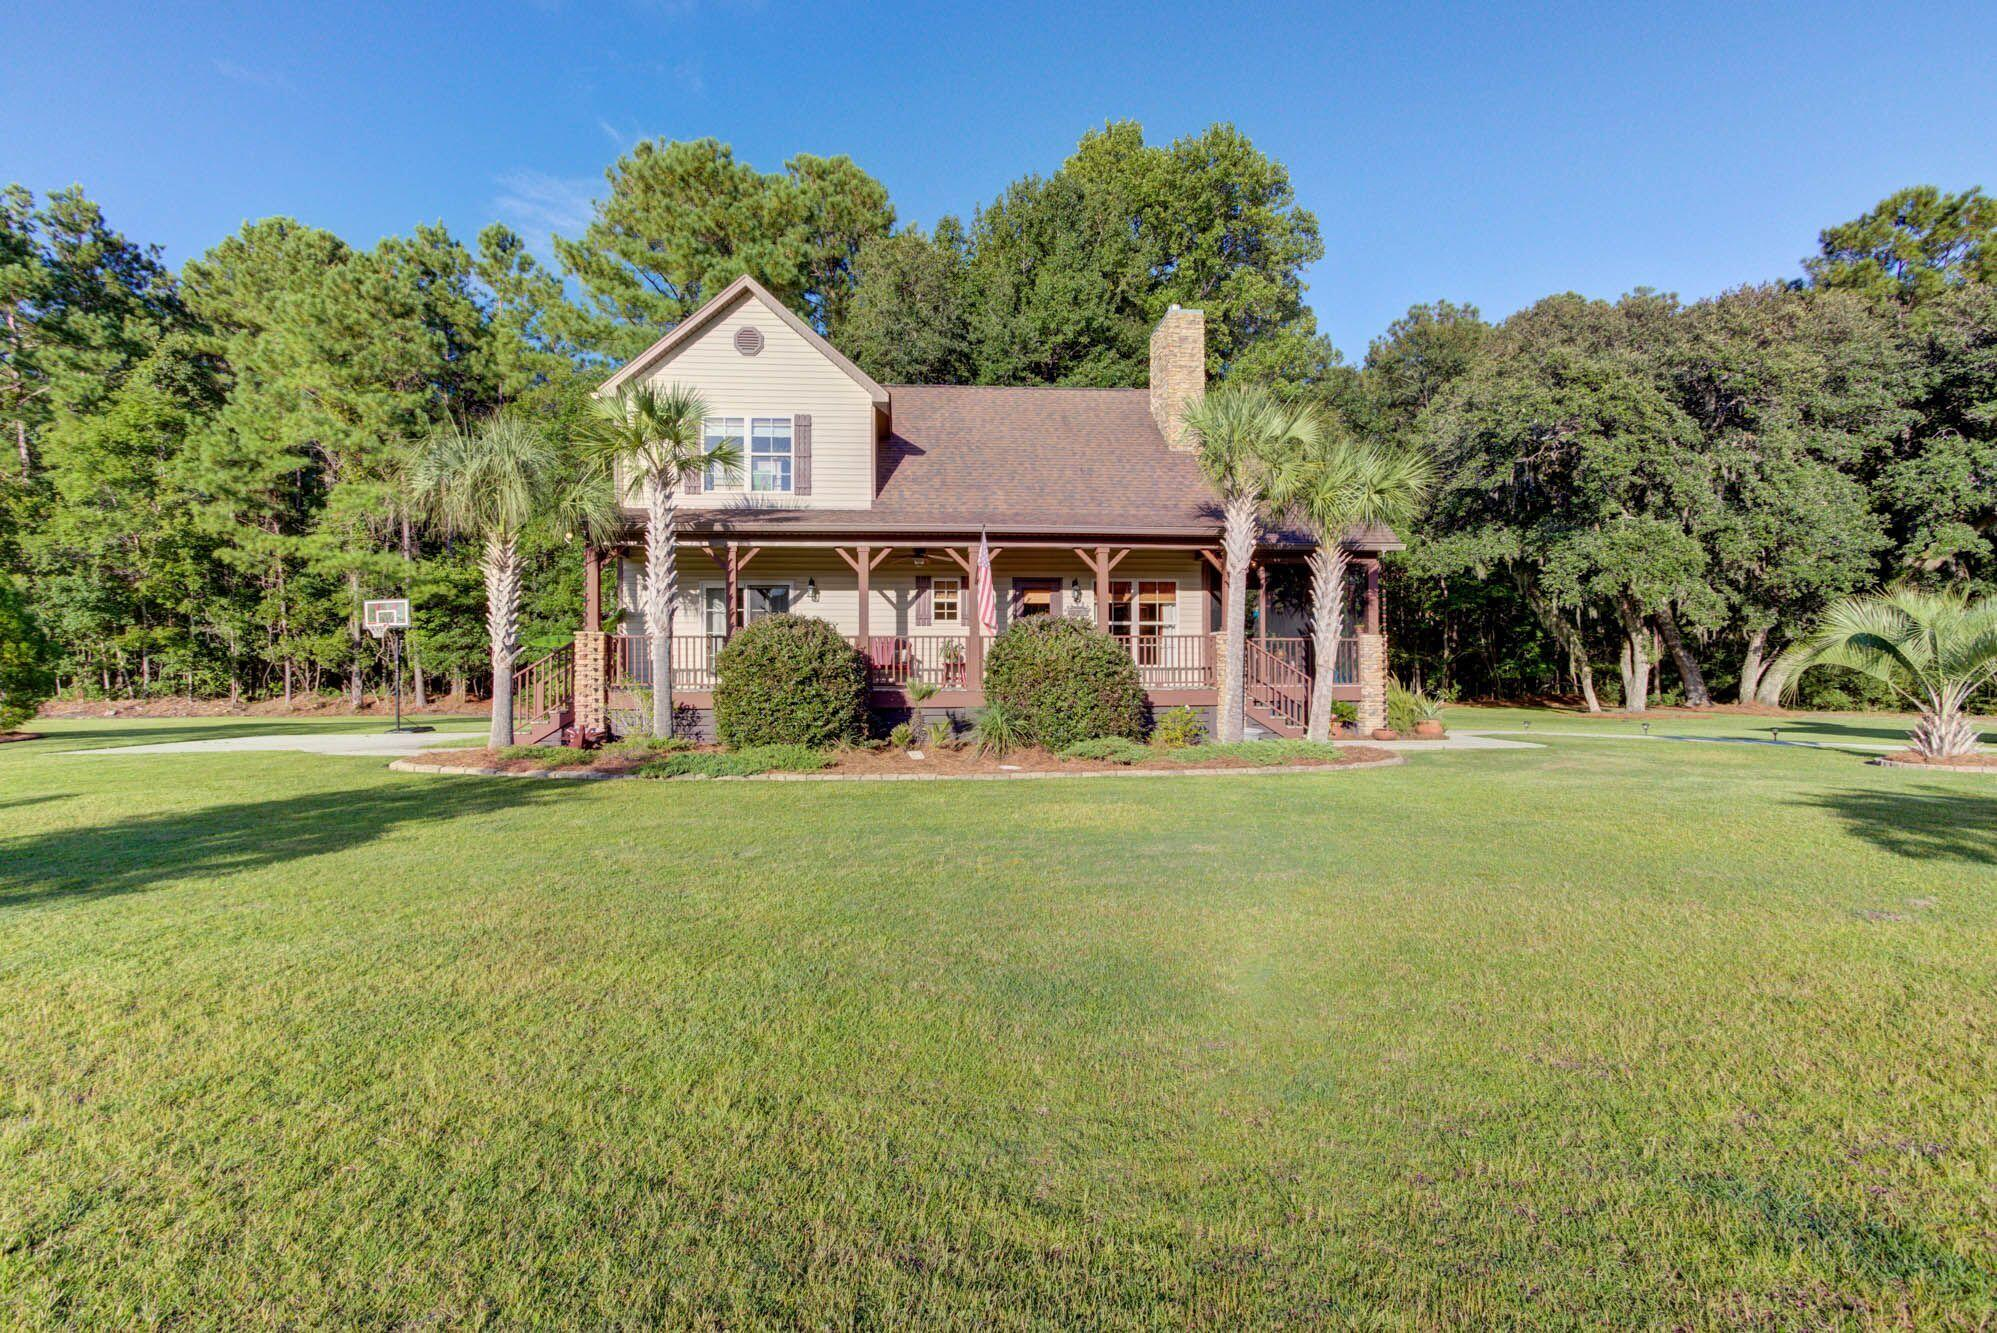 Ravens Point Plantation Homes For Sale - 1381 Constantine, Johns Island, SC - 18